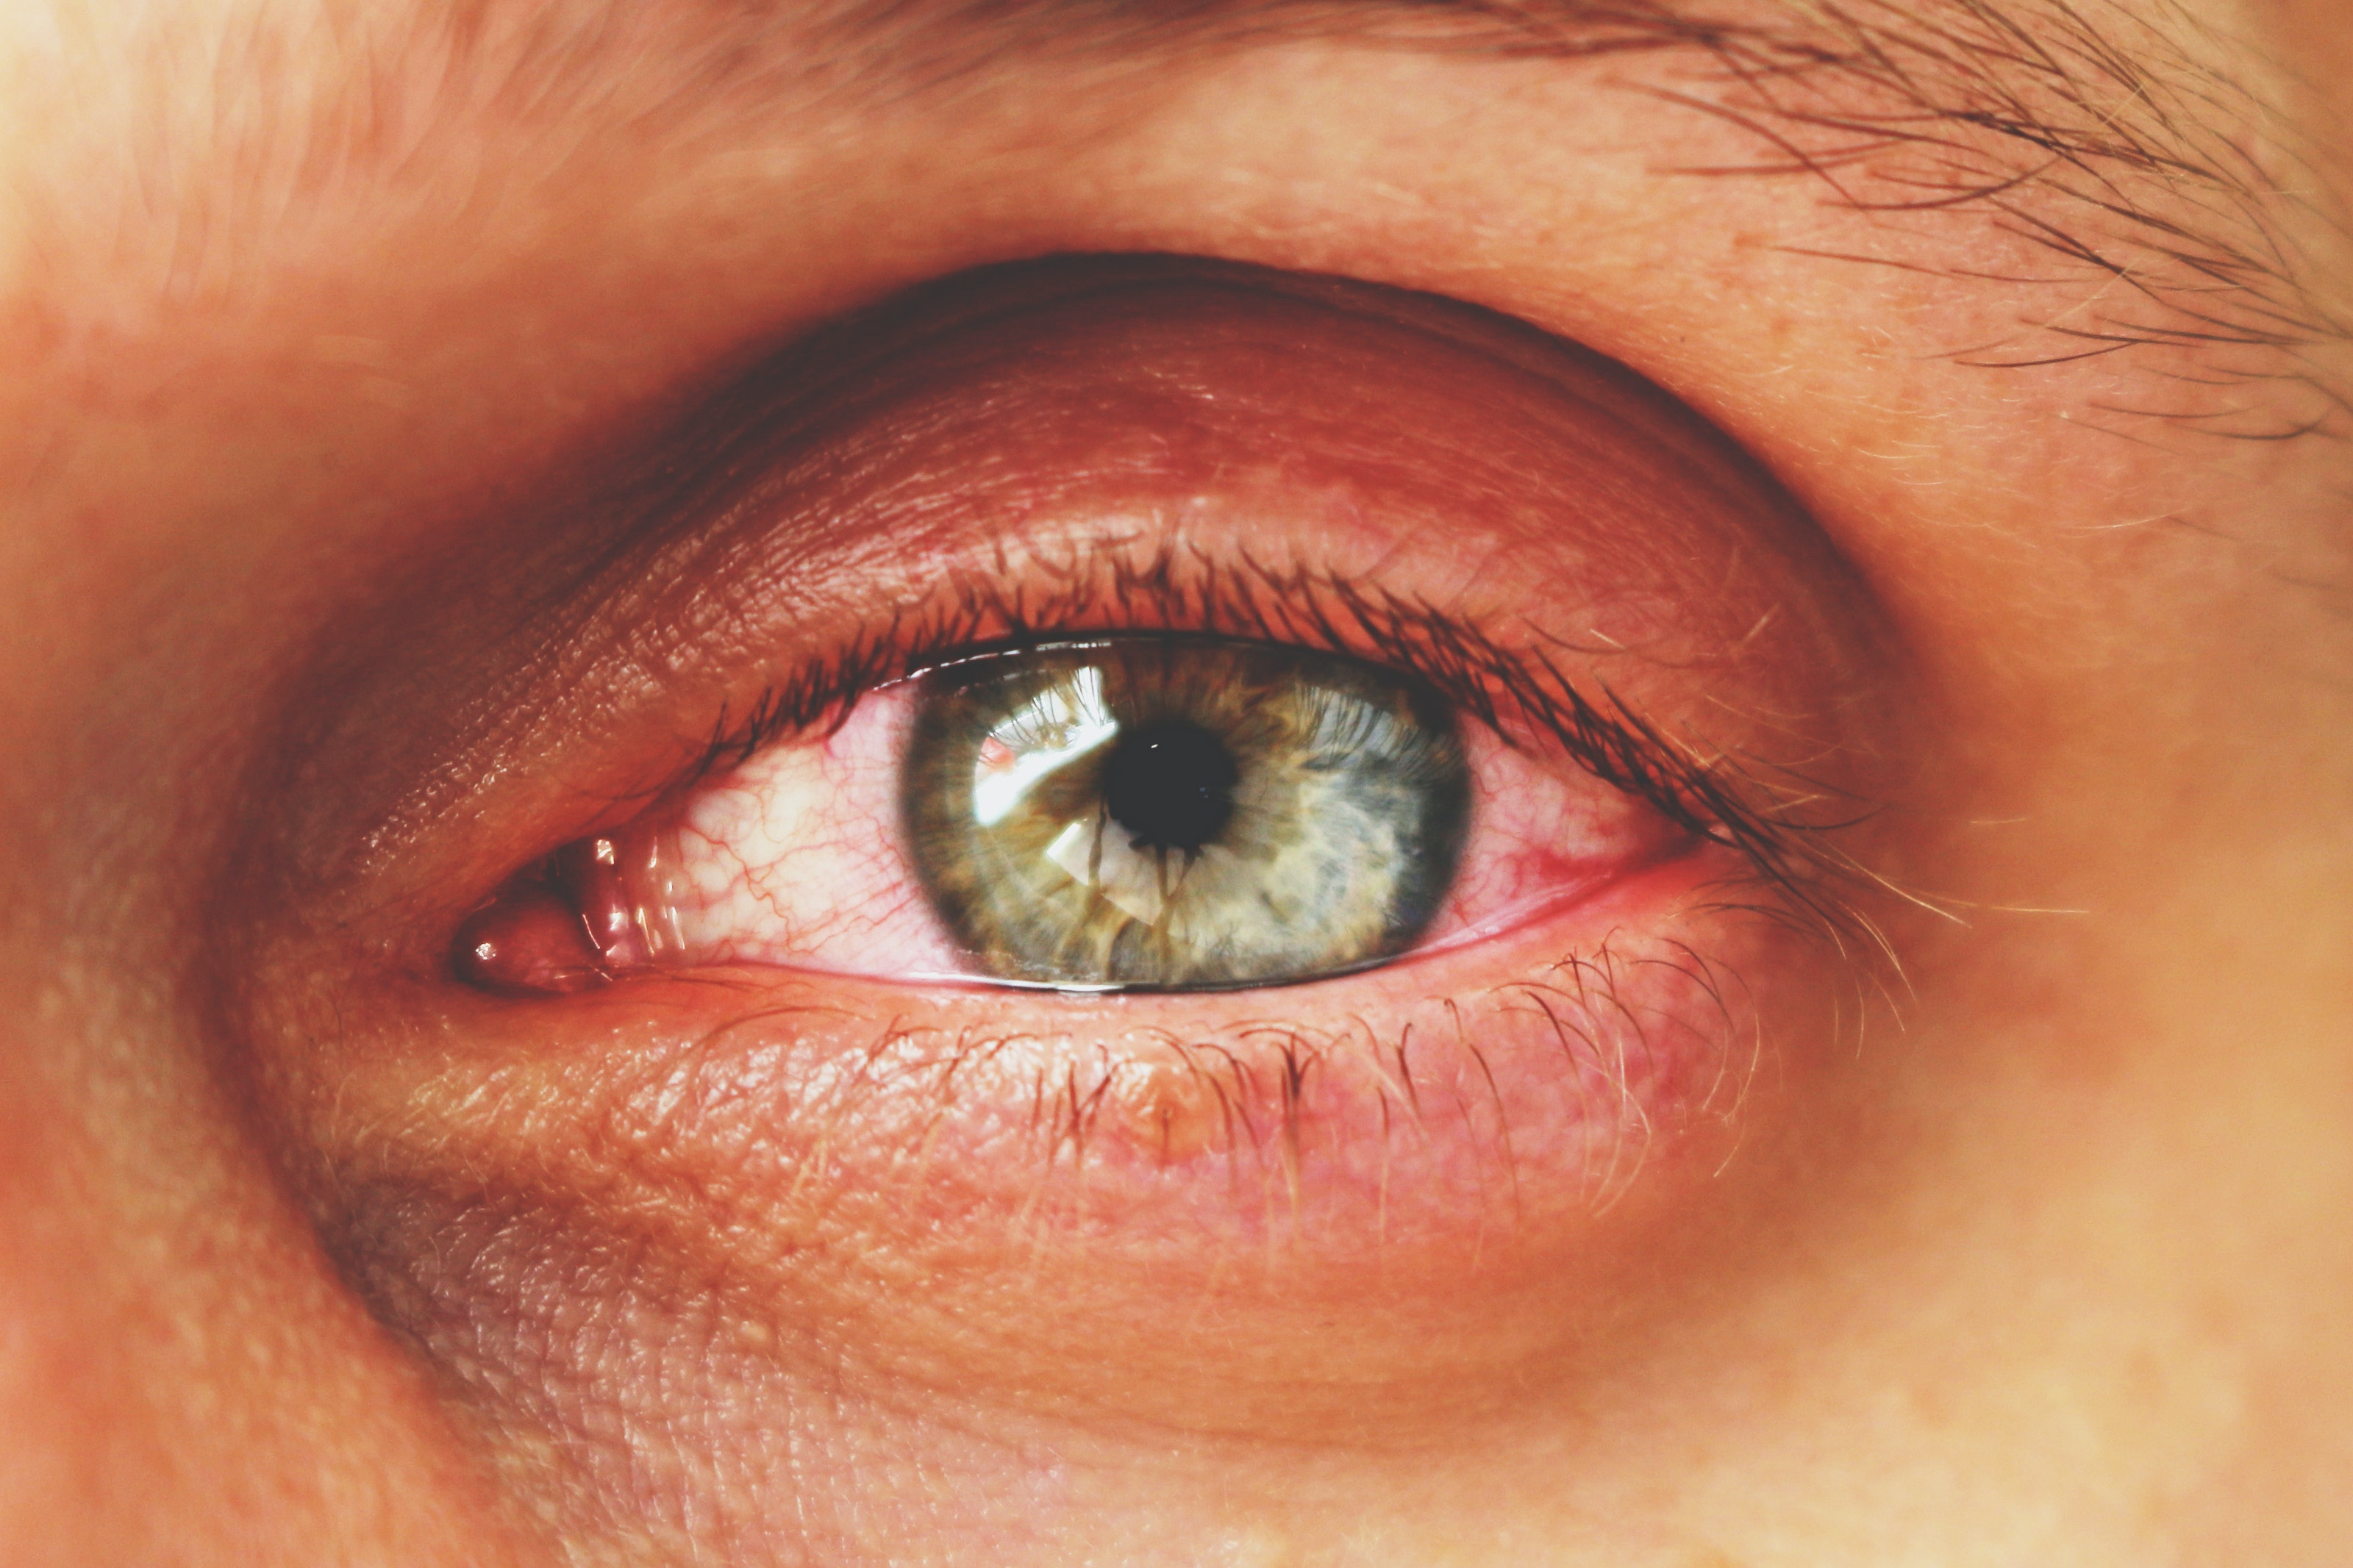 An image depicting a person suffering from tearing up in both eyes symptoms